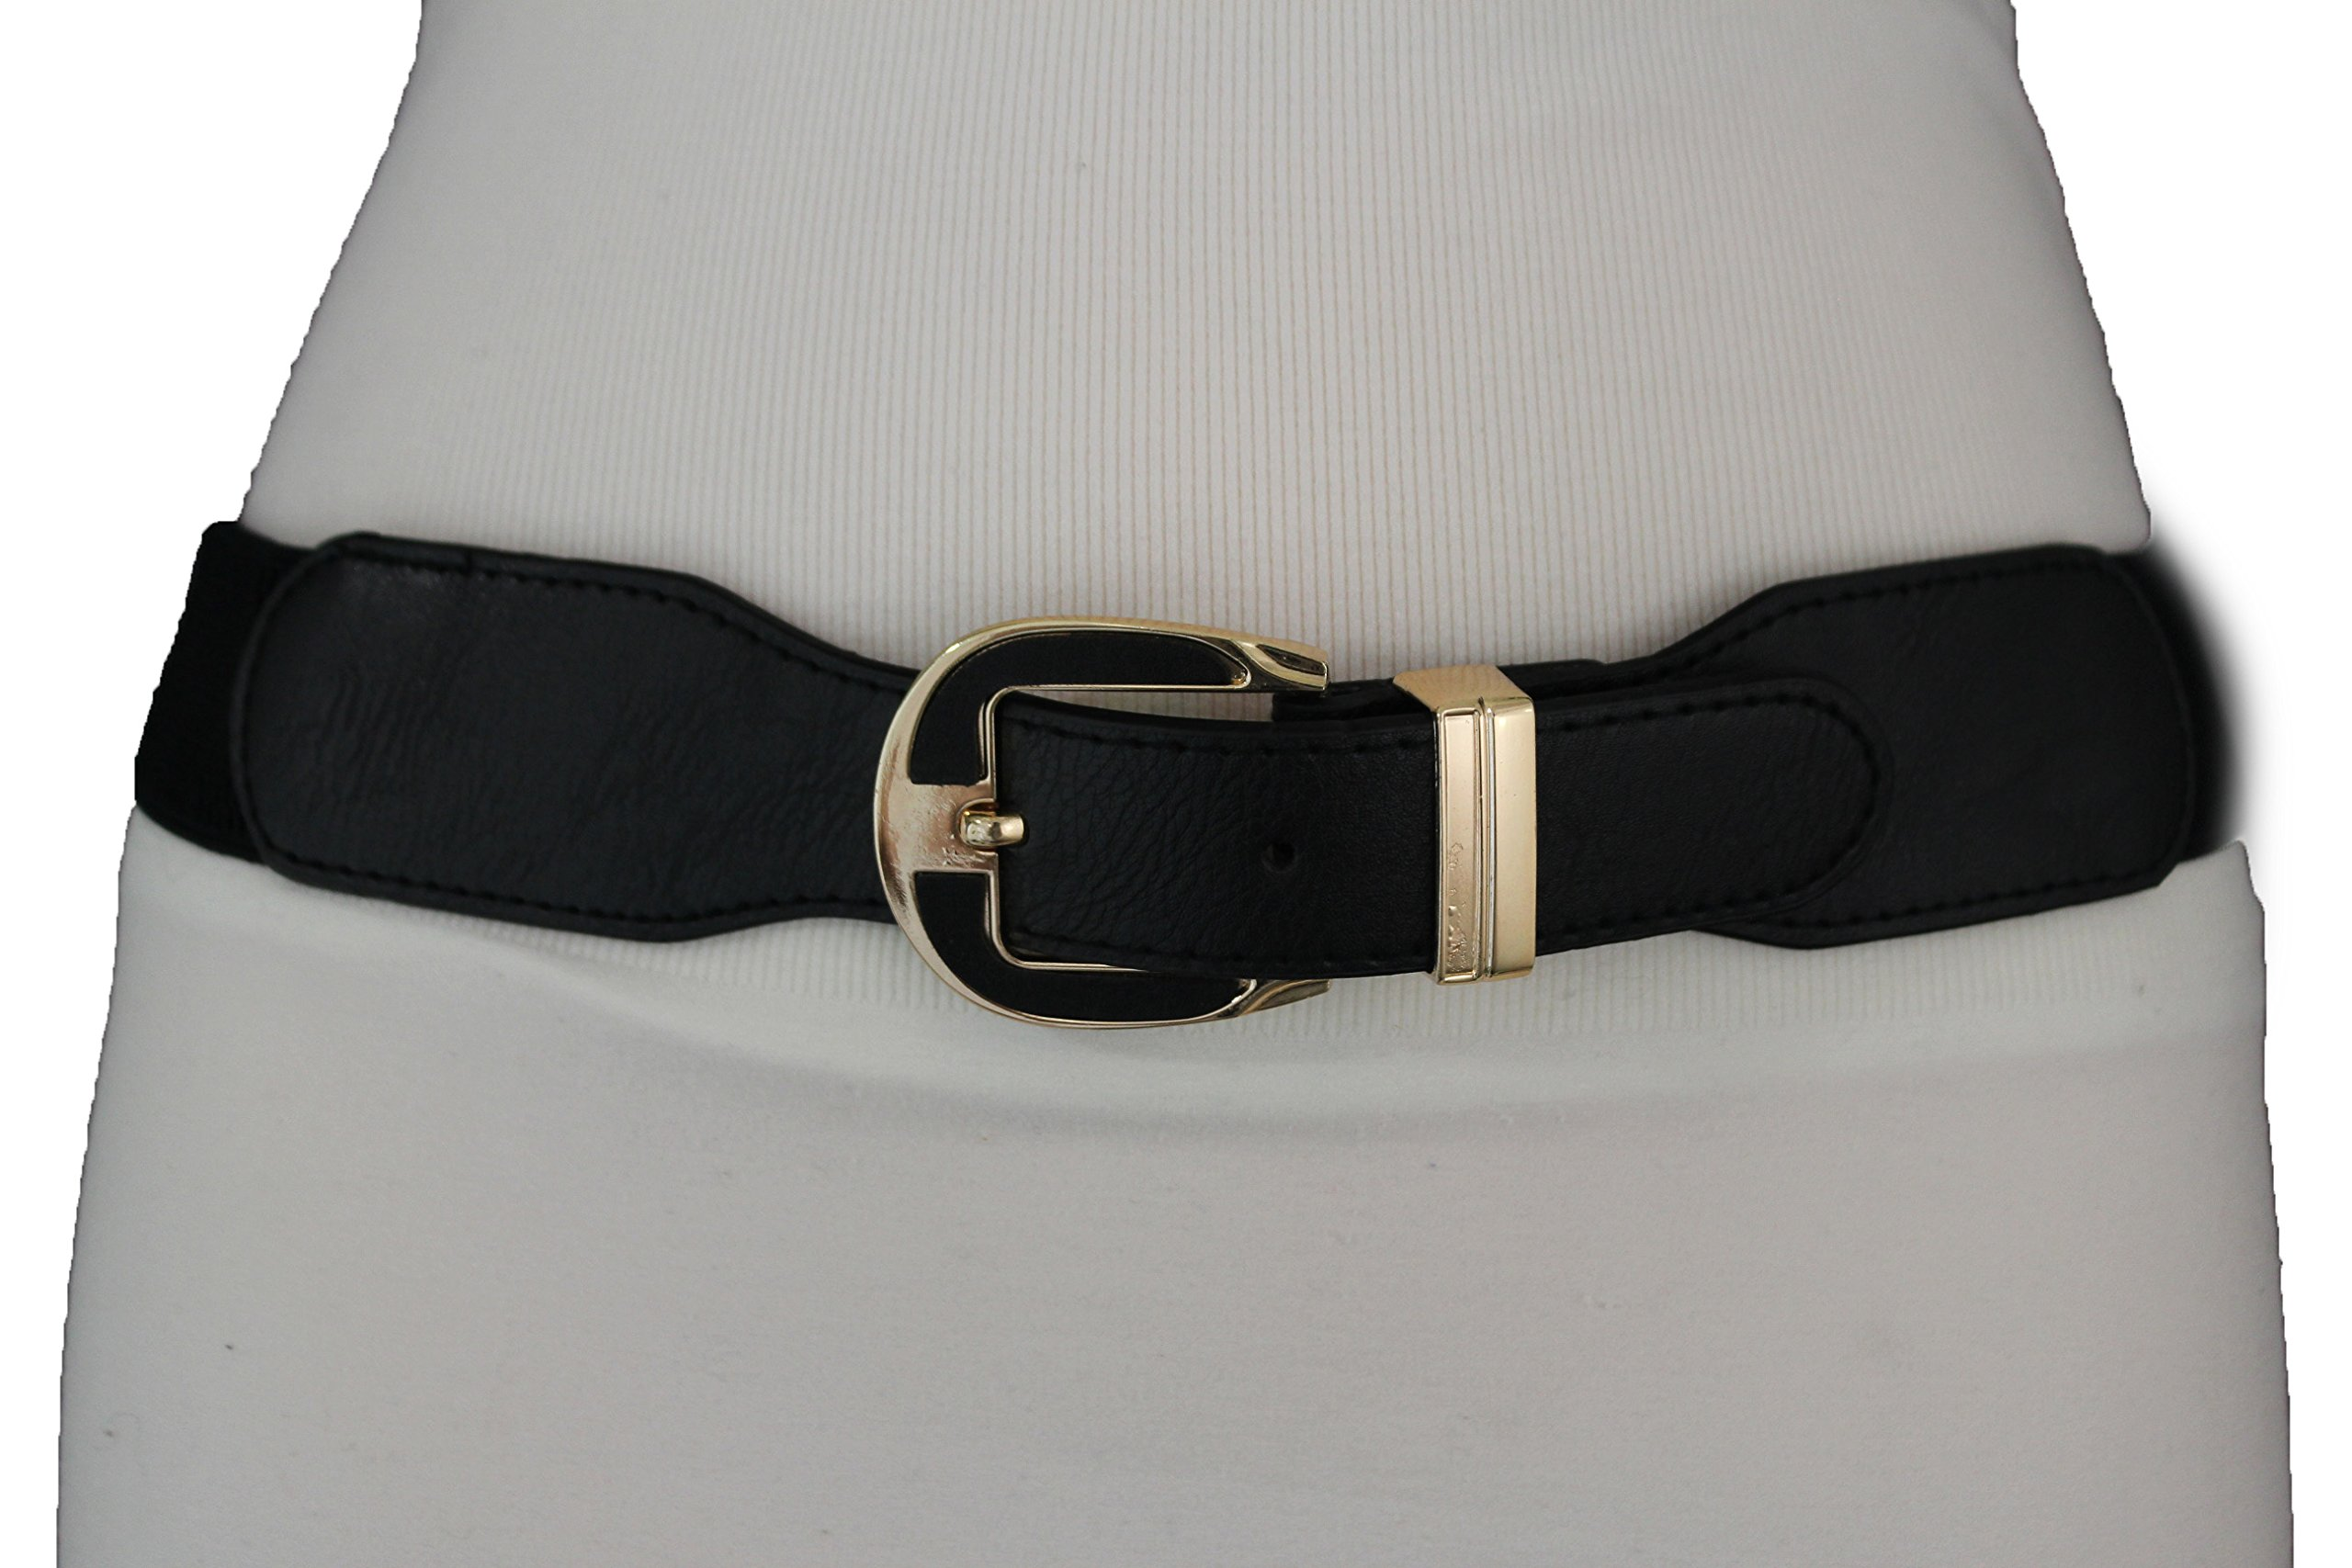 TFJ Women's Elastic Fashion Belt Hip High Waist Gold Buckle Plus Size M L Xl Black